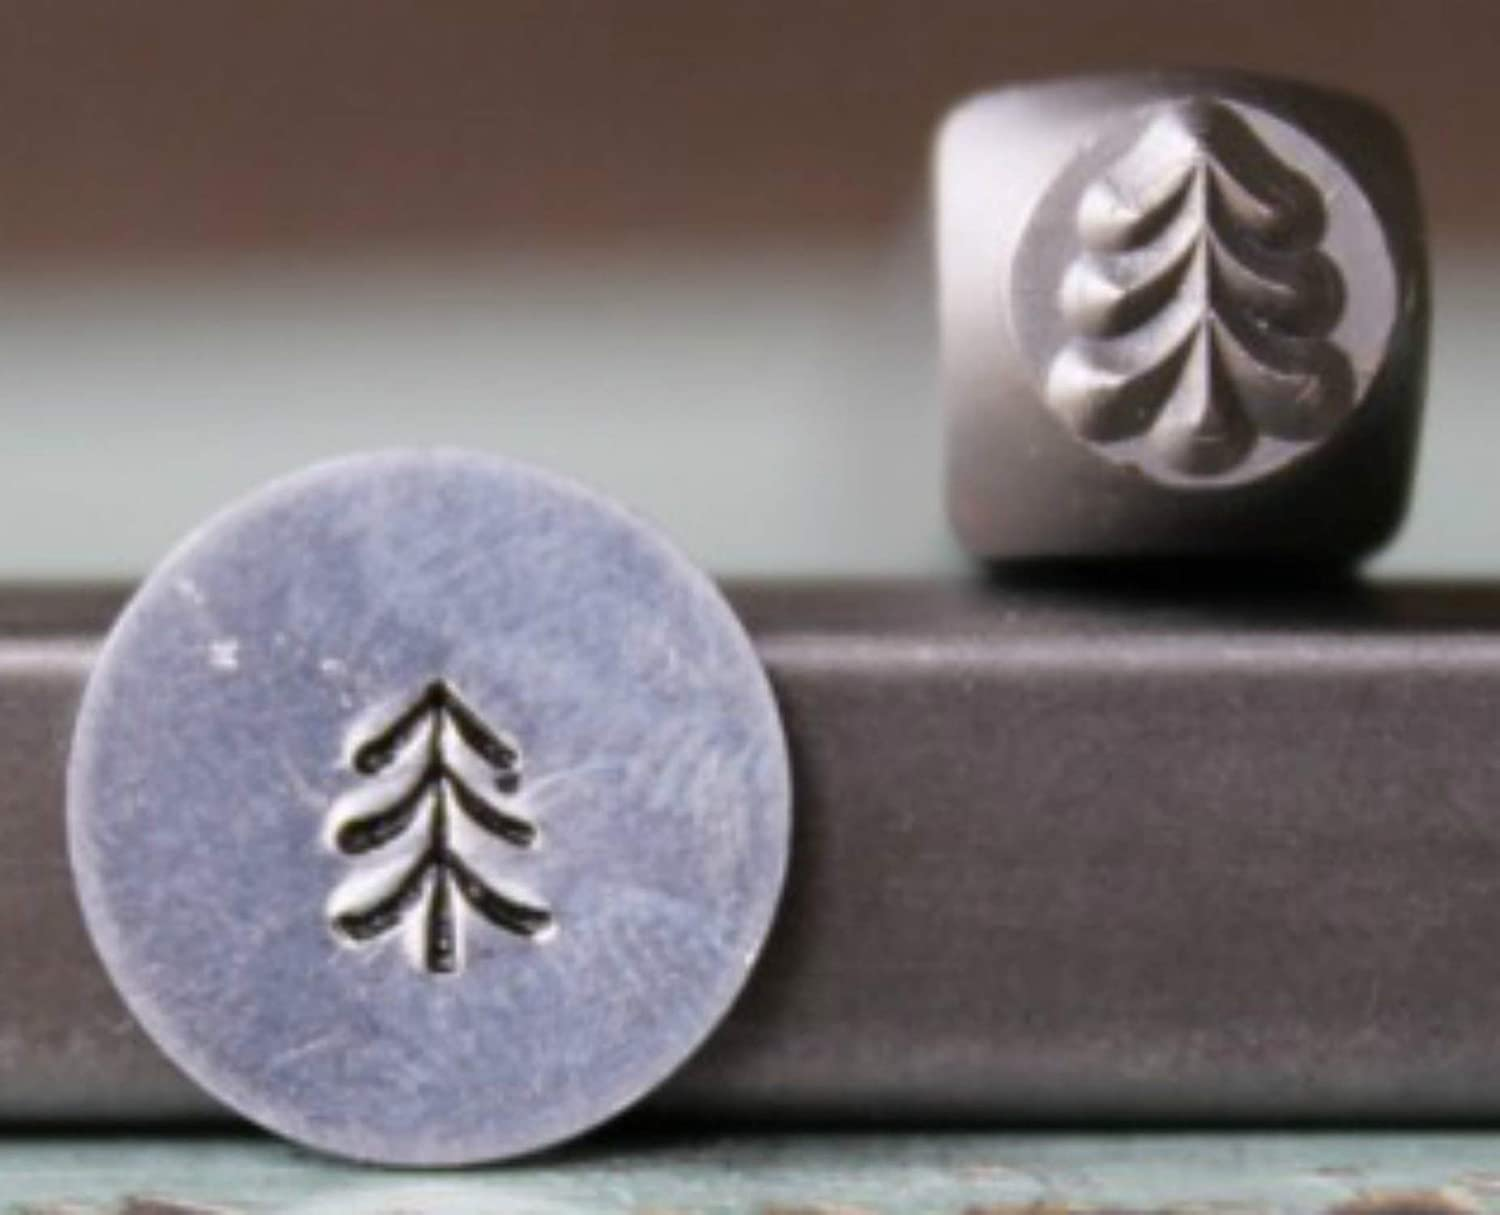 CH-279 Brand New 5mm Simple Pine Tree 2 Metal Punch Design Stamp Supply Guy